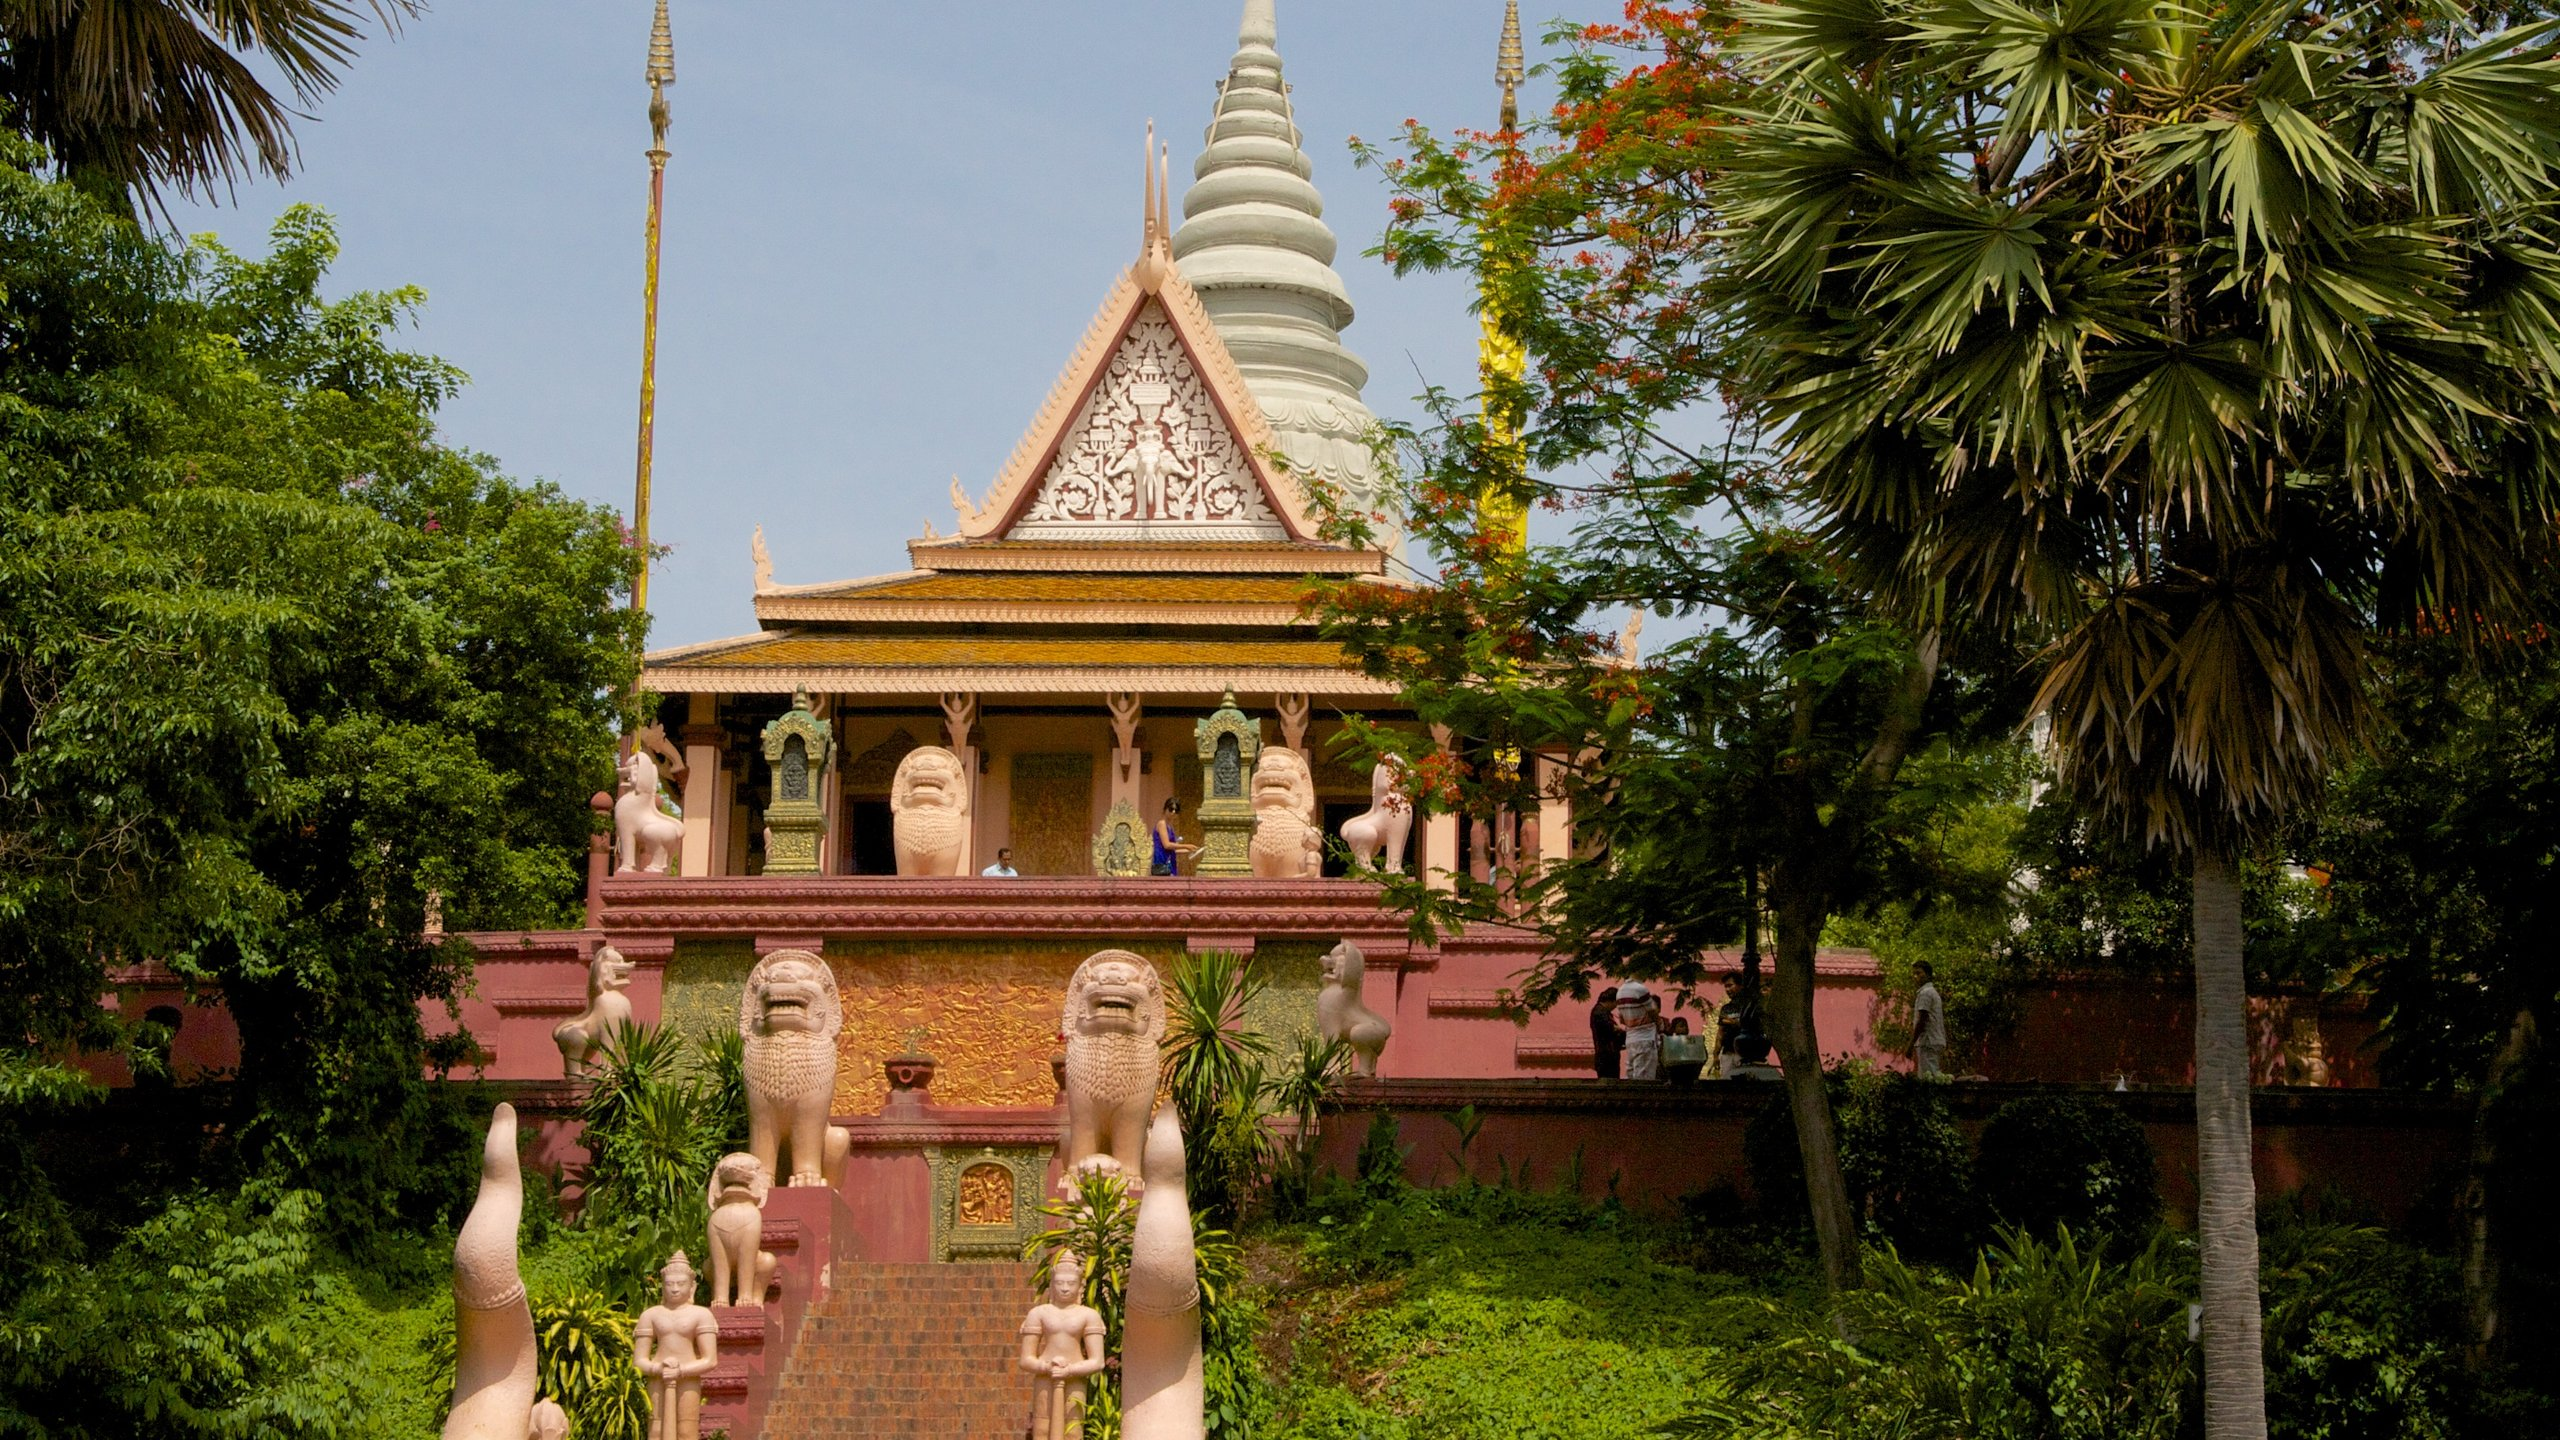 Sitting atop what is considered the only hill in Phnom Penh, this eclectic Buddhist monastery features a fascinating array of shrines, stupas and ornate buildings.